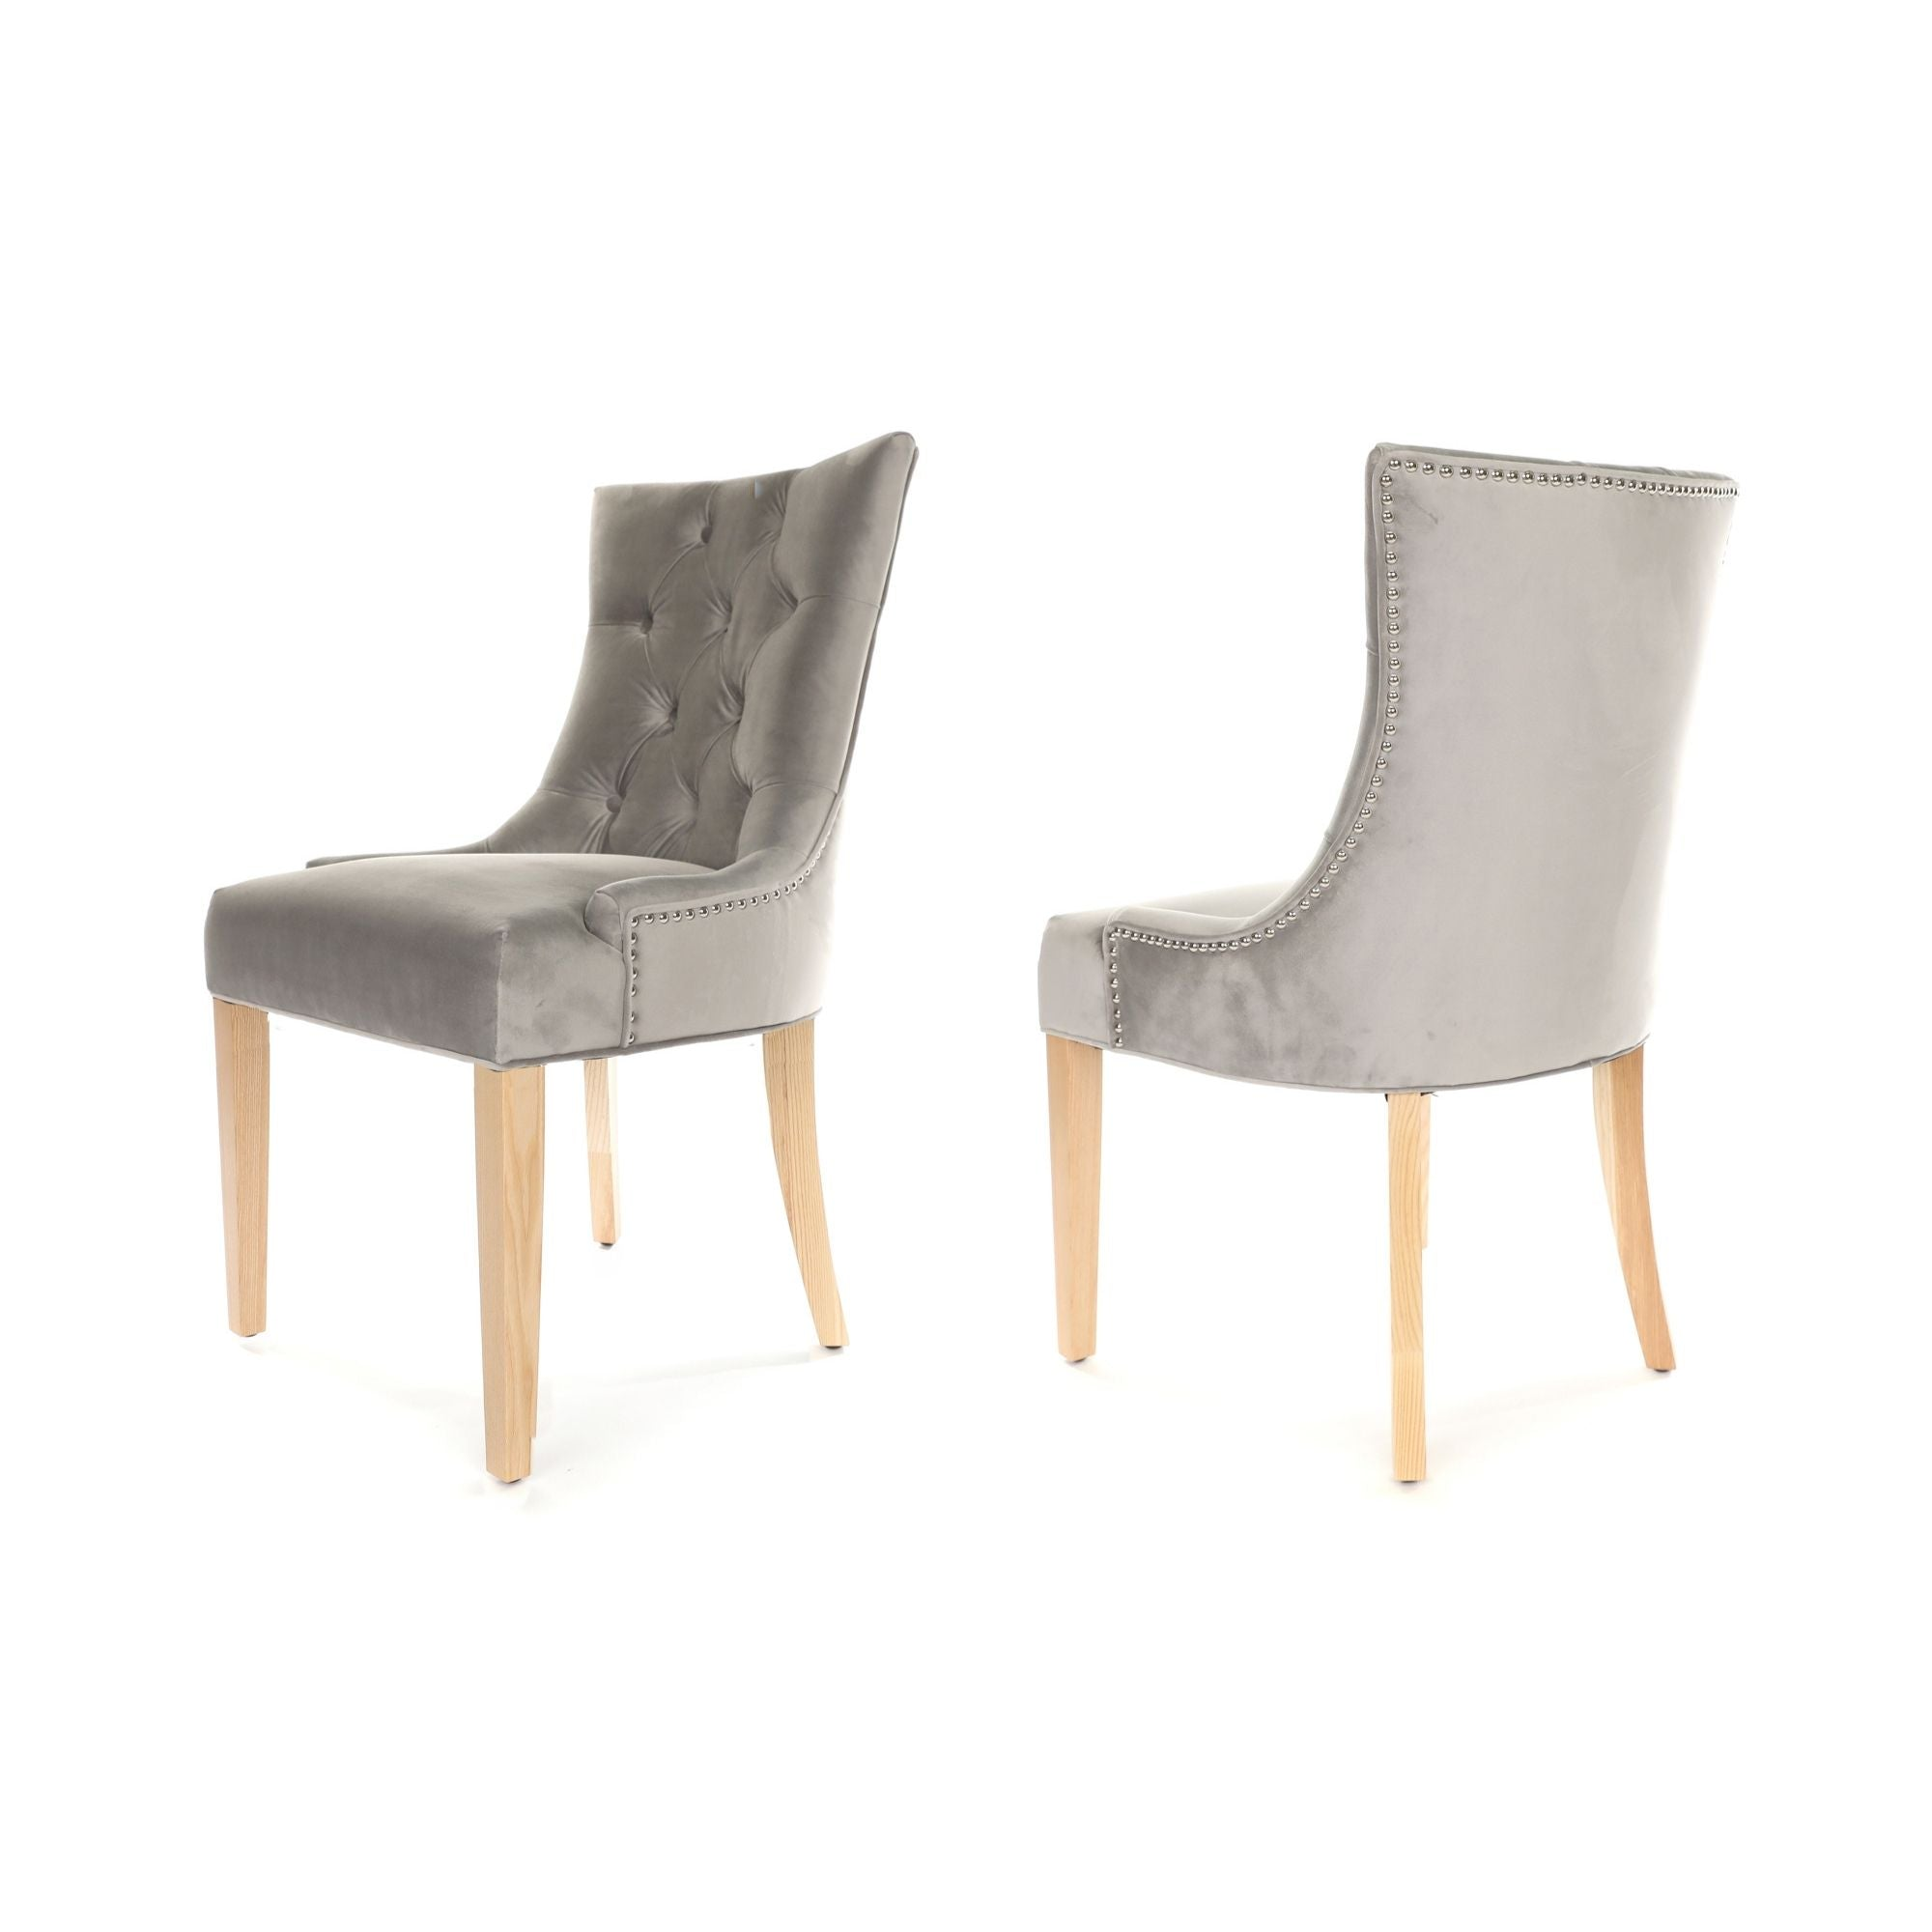 Porter Dining Chair, Light Grey fabric, Natural Wood legs and stud detail